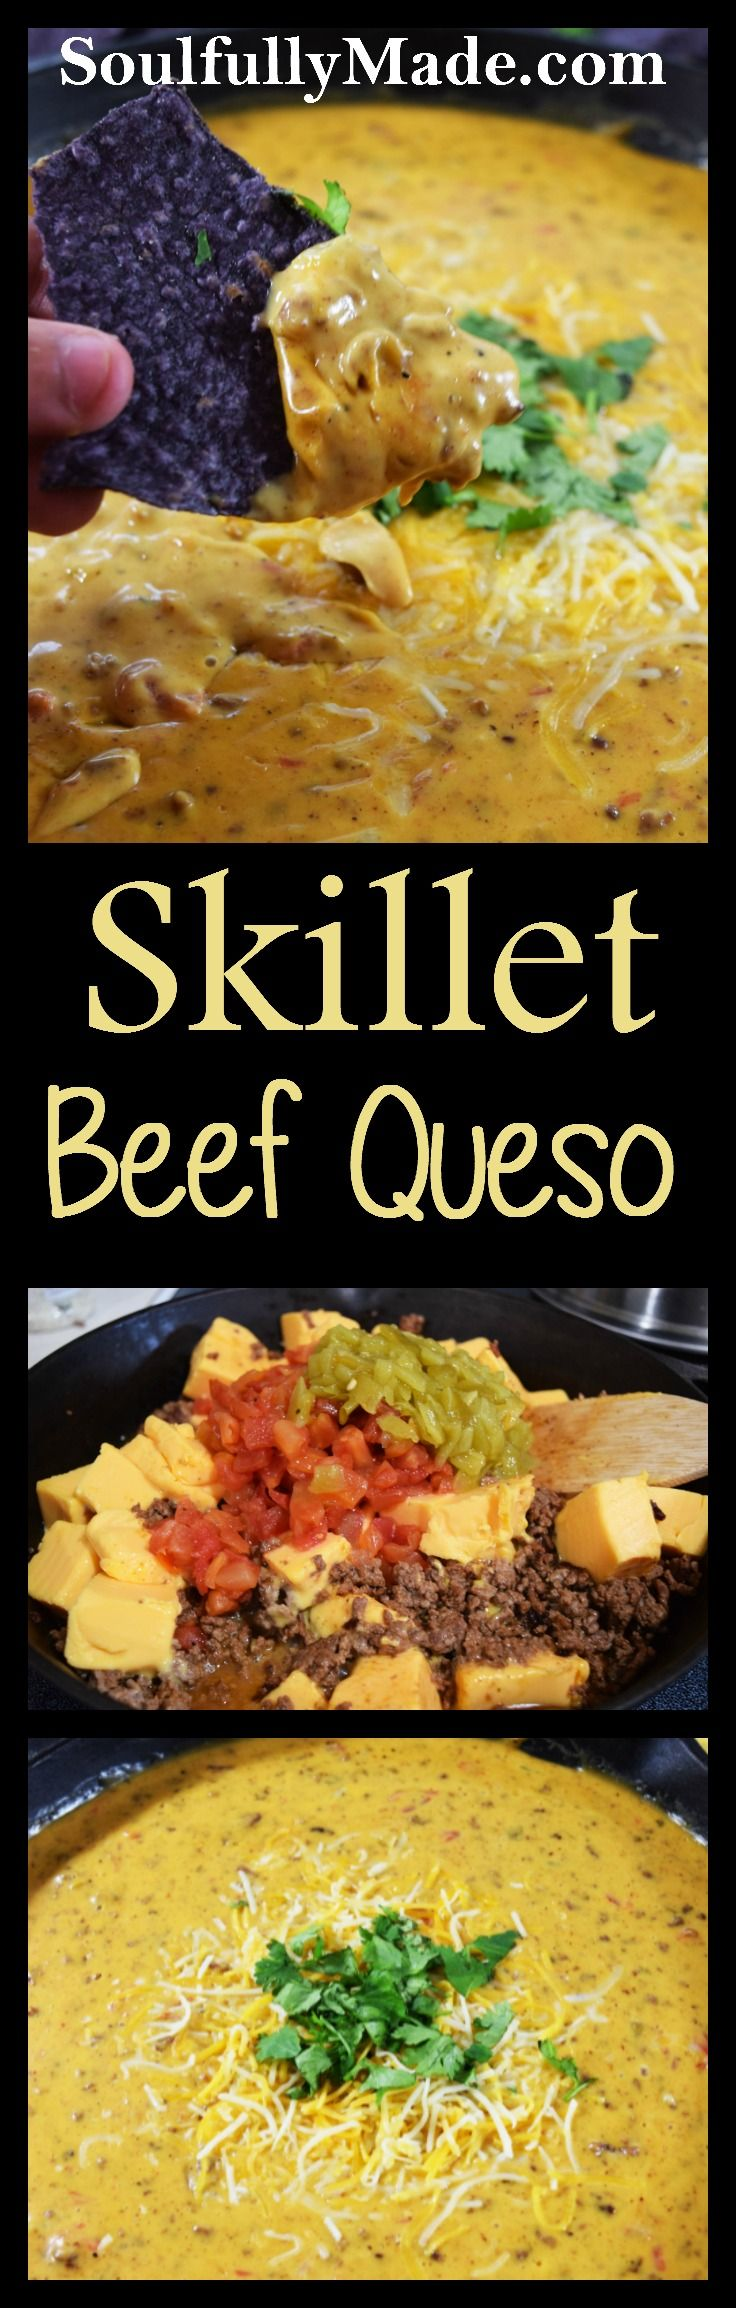 This Skillet Beef Queso is the perfect starter to cheer your team to a victory!